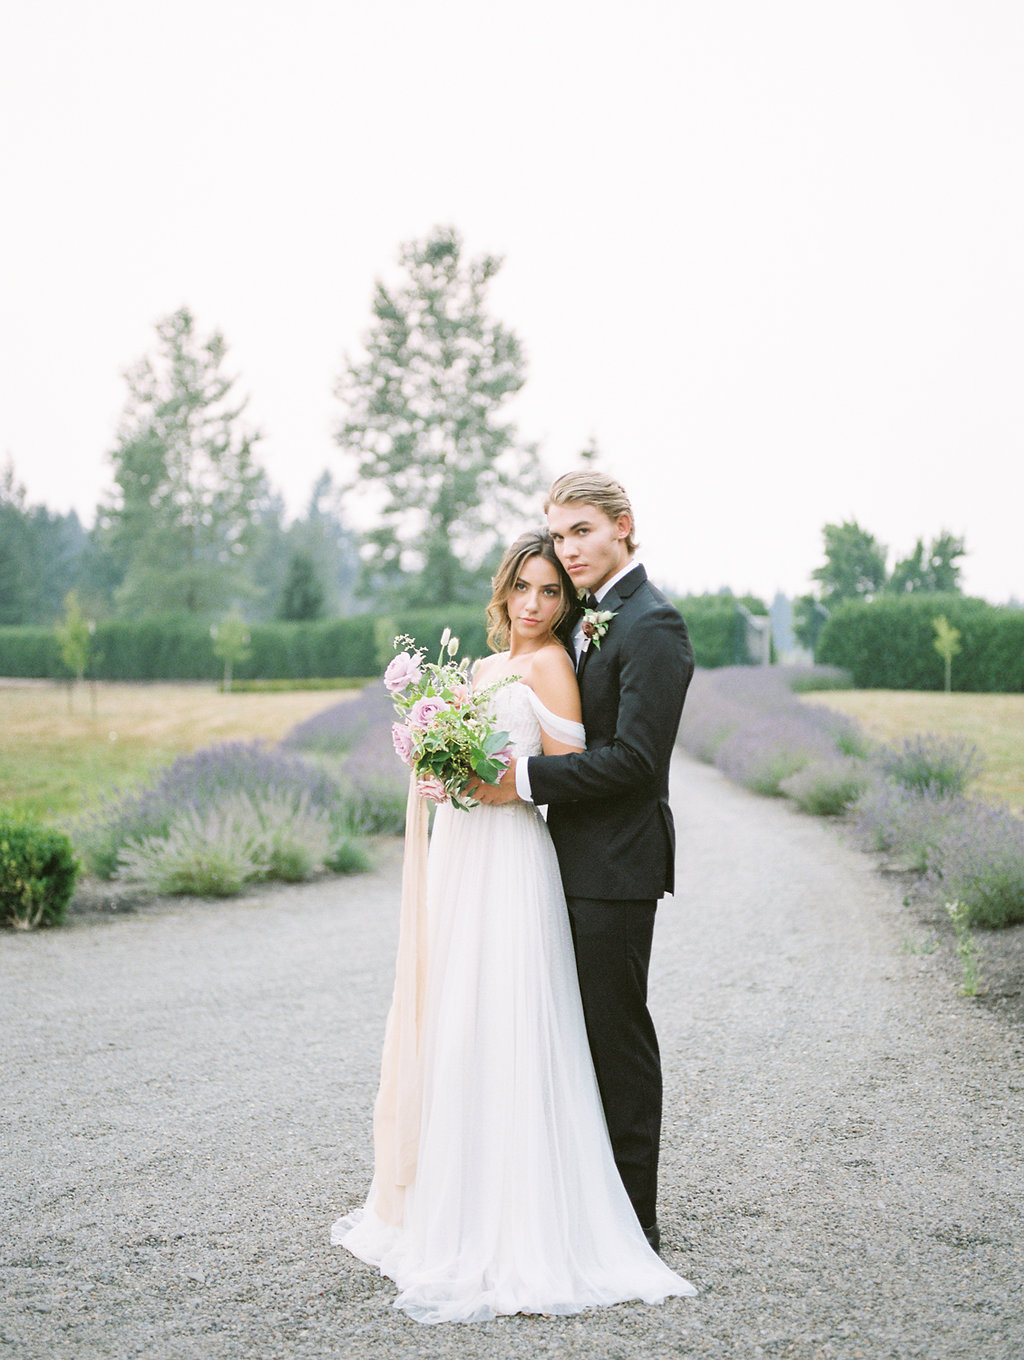 LuxProvenceWeddingInspired-SavanMentorshipbyJonandMochPhotography(69of75).jpg